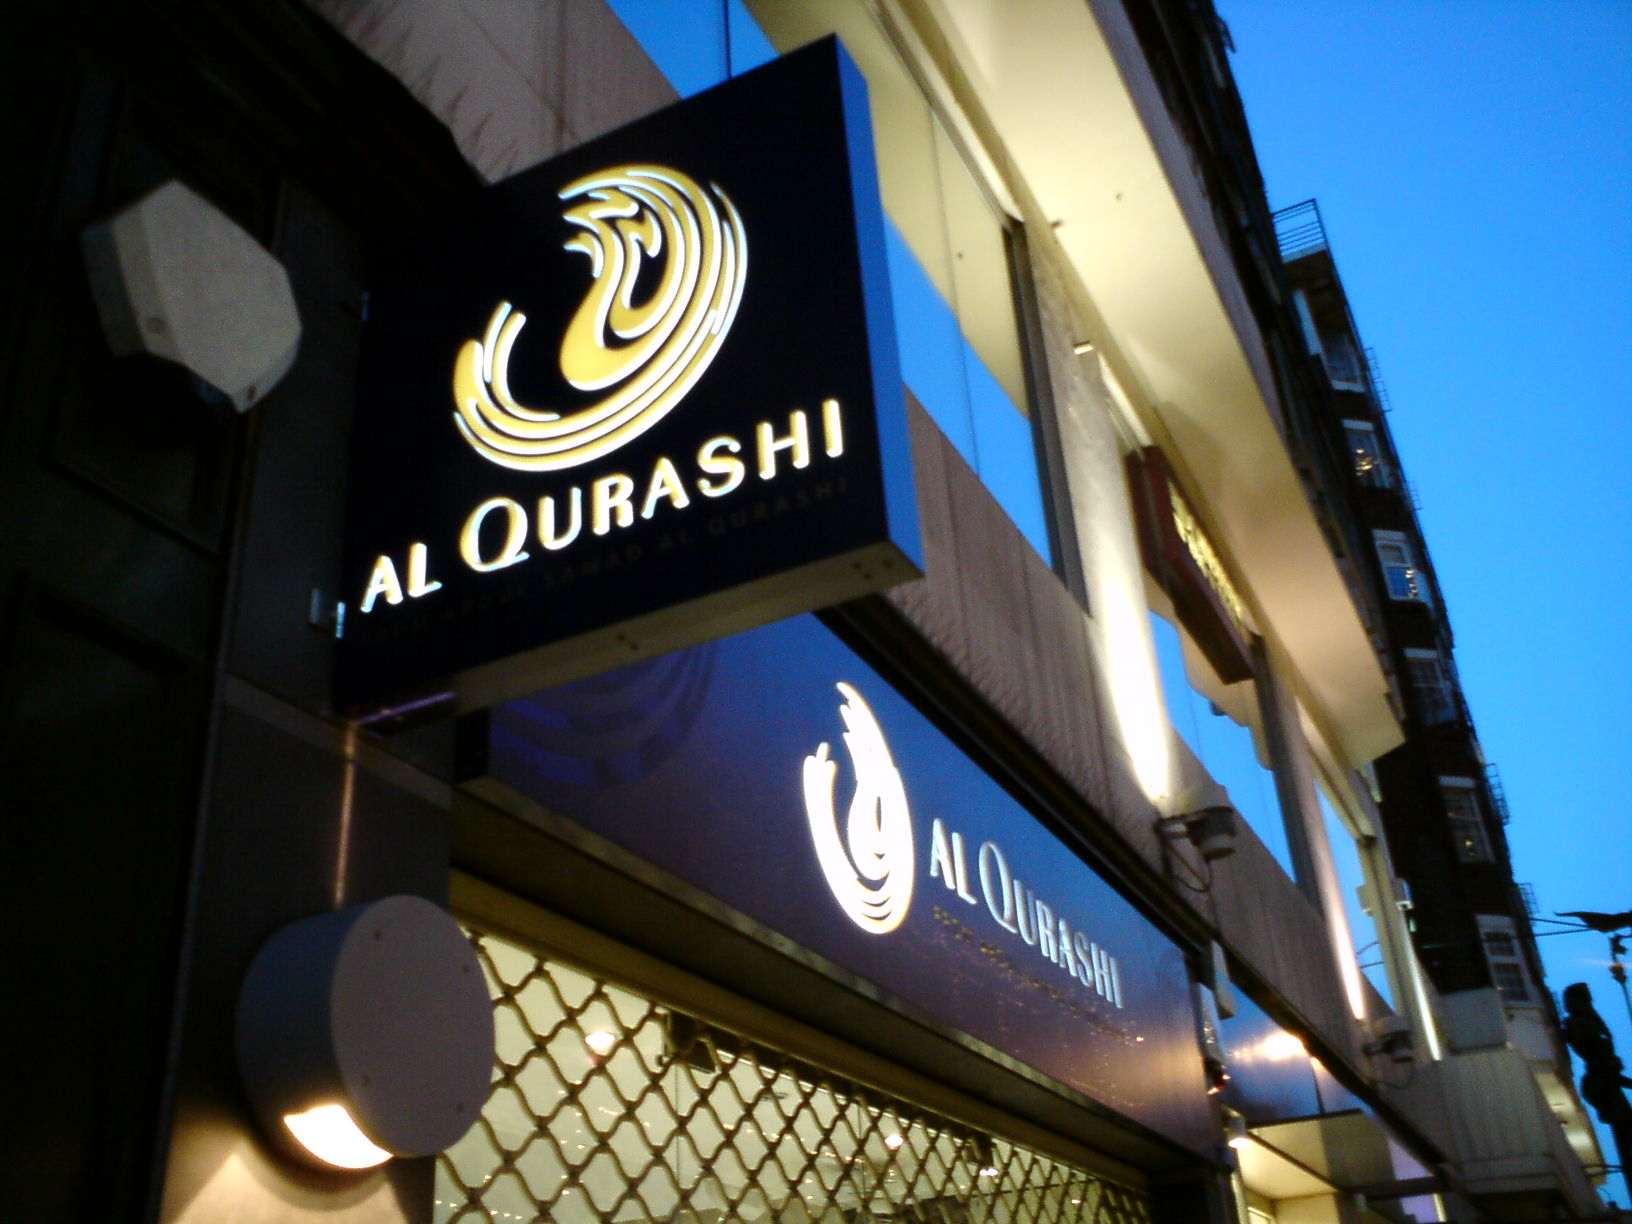 Al Qurashi main sign internally Illuminated Fascia Signs by E-Signs London with Super Bright 110 Lumen LEDS with 5 year warranty within 3D Perspex letters & powder coated aluminium sign by www.e-signs.co.uk